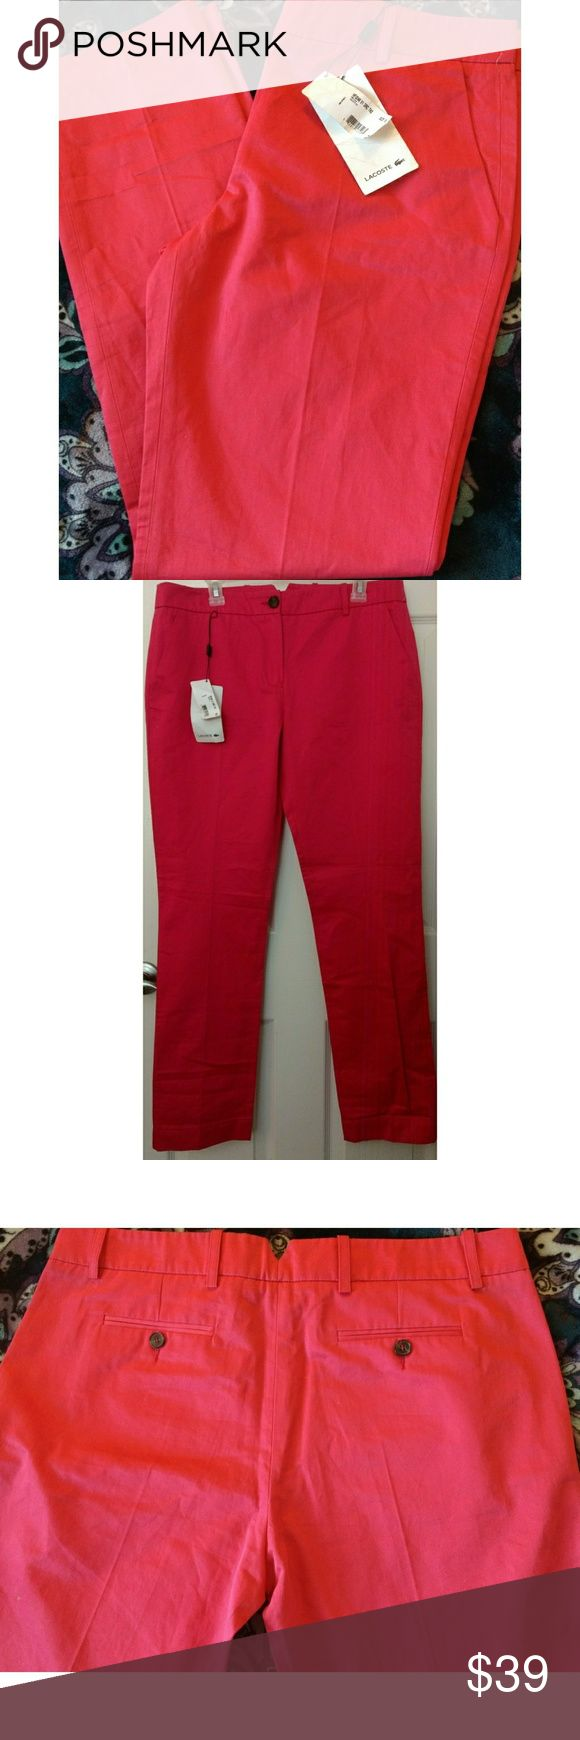 NWT Lacoste Hot Pink Pants Brand new with tags attached-ladies size 10 Lacoste brand Hot Pink/BRight Pink Nice high quality dress pants-with your fav pumps or heels,  or wear as everyday more casual pants by pairing with a cute summer tank-or warmer top for cooler days and your fav sandals or wedges.  light/medium weight.   Fits a size 10 ladies Lacoste Pants Ankle & Cropped